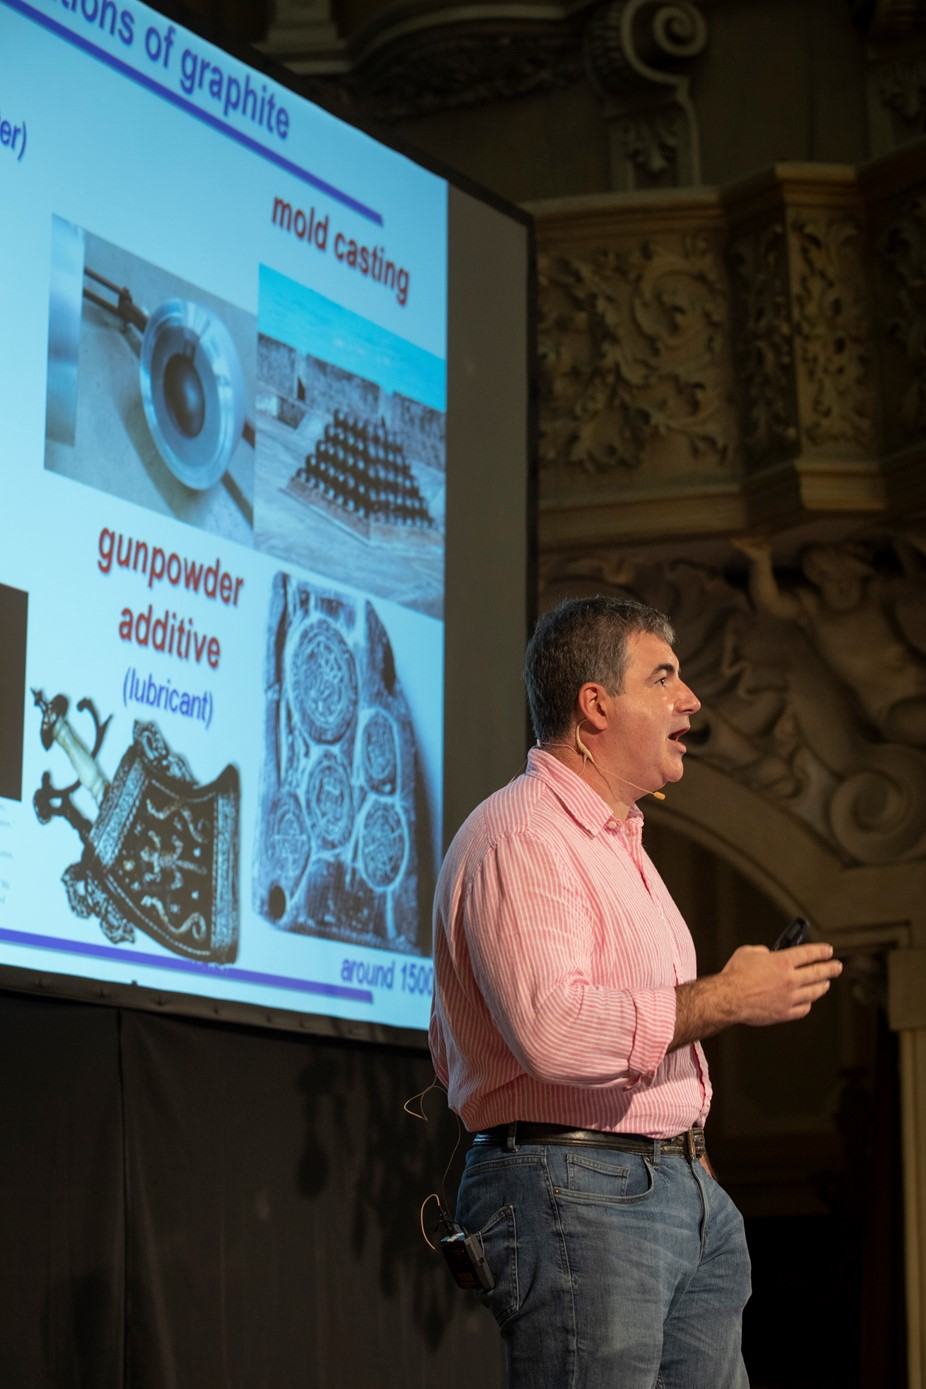 Konstantin Novoselov presents at the Graphene Flagship's Marketplace event